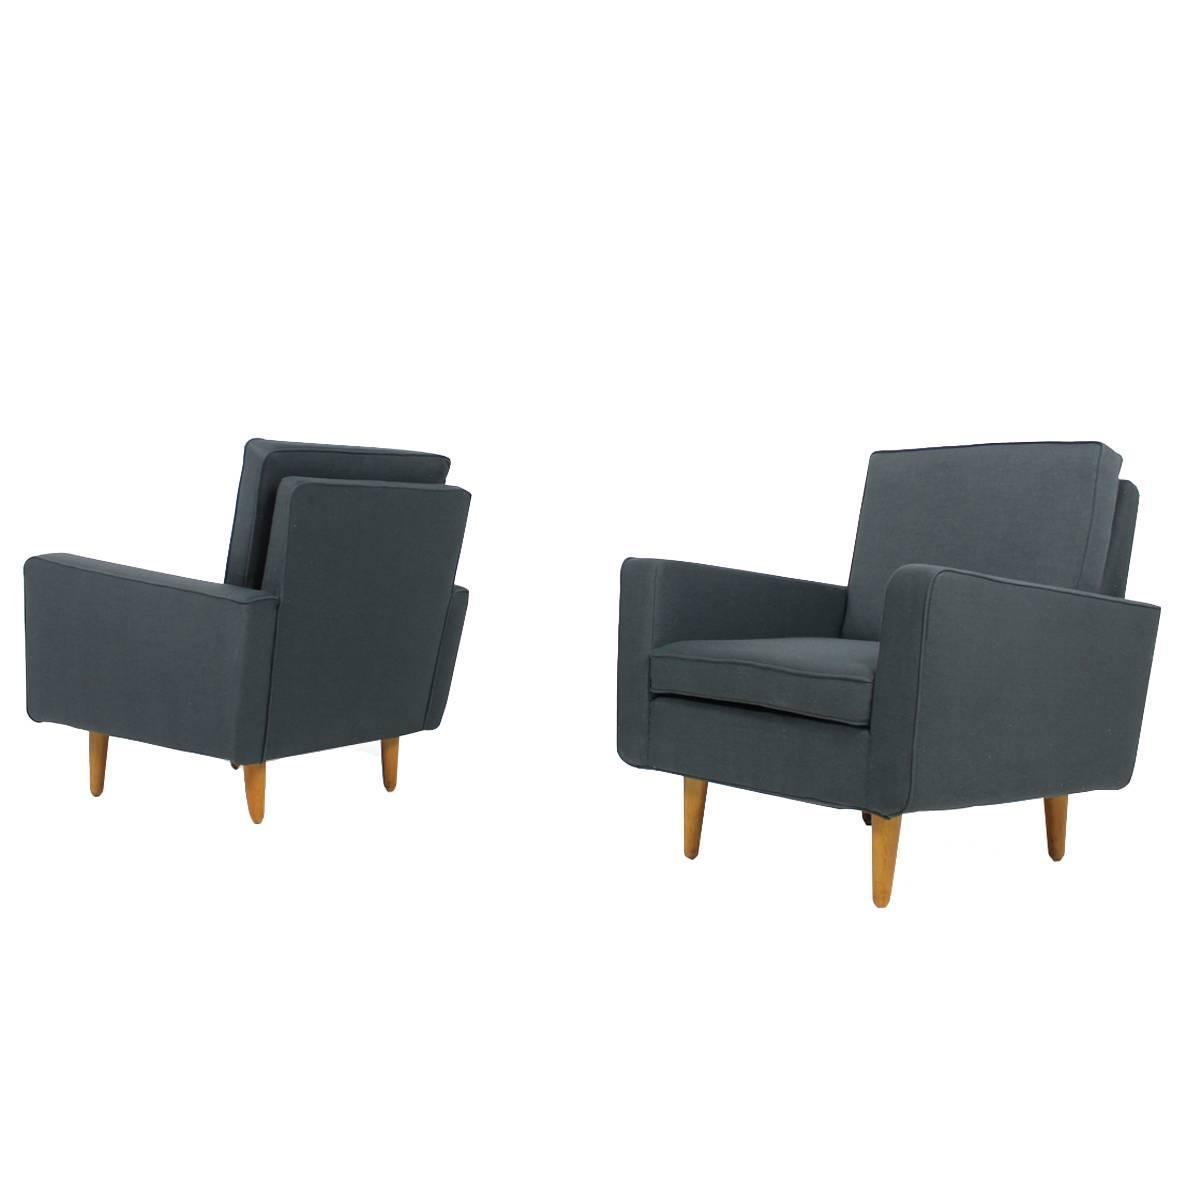 rare 1950s florence knoll lounge chairs mod 26 knoll international mid century for sale at 1stdibs. Black Bedroom Furniture Sets. Home Design Ideas